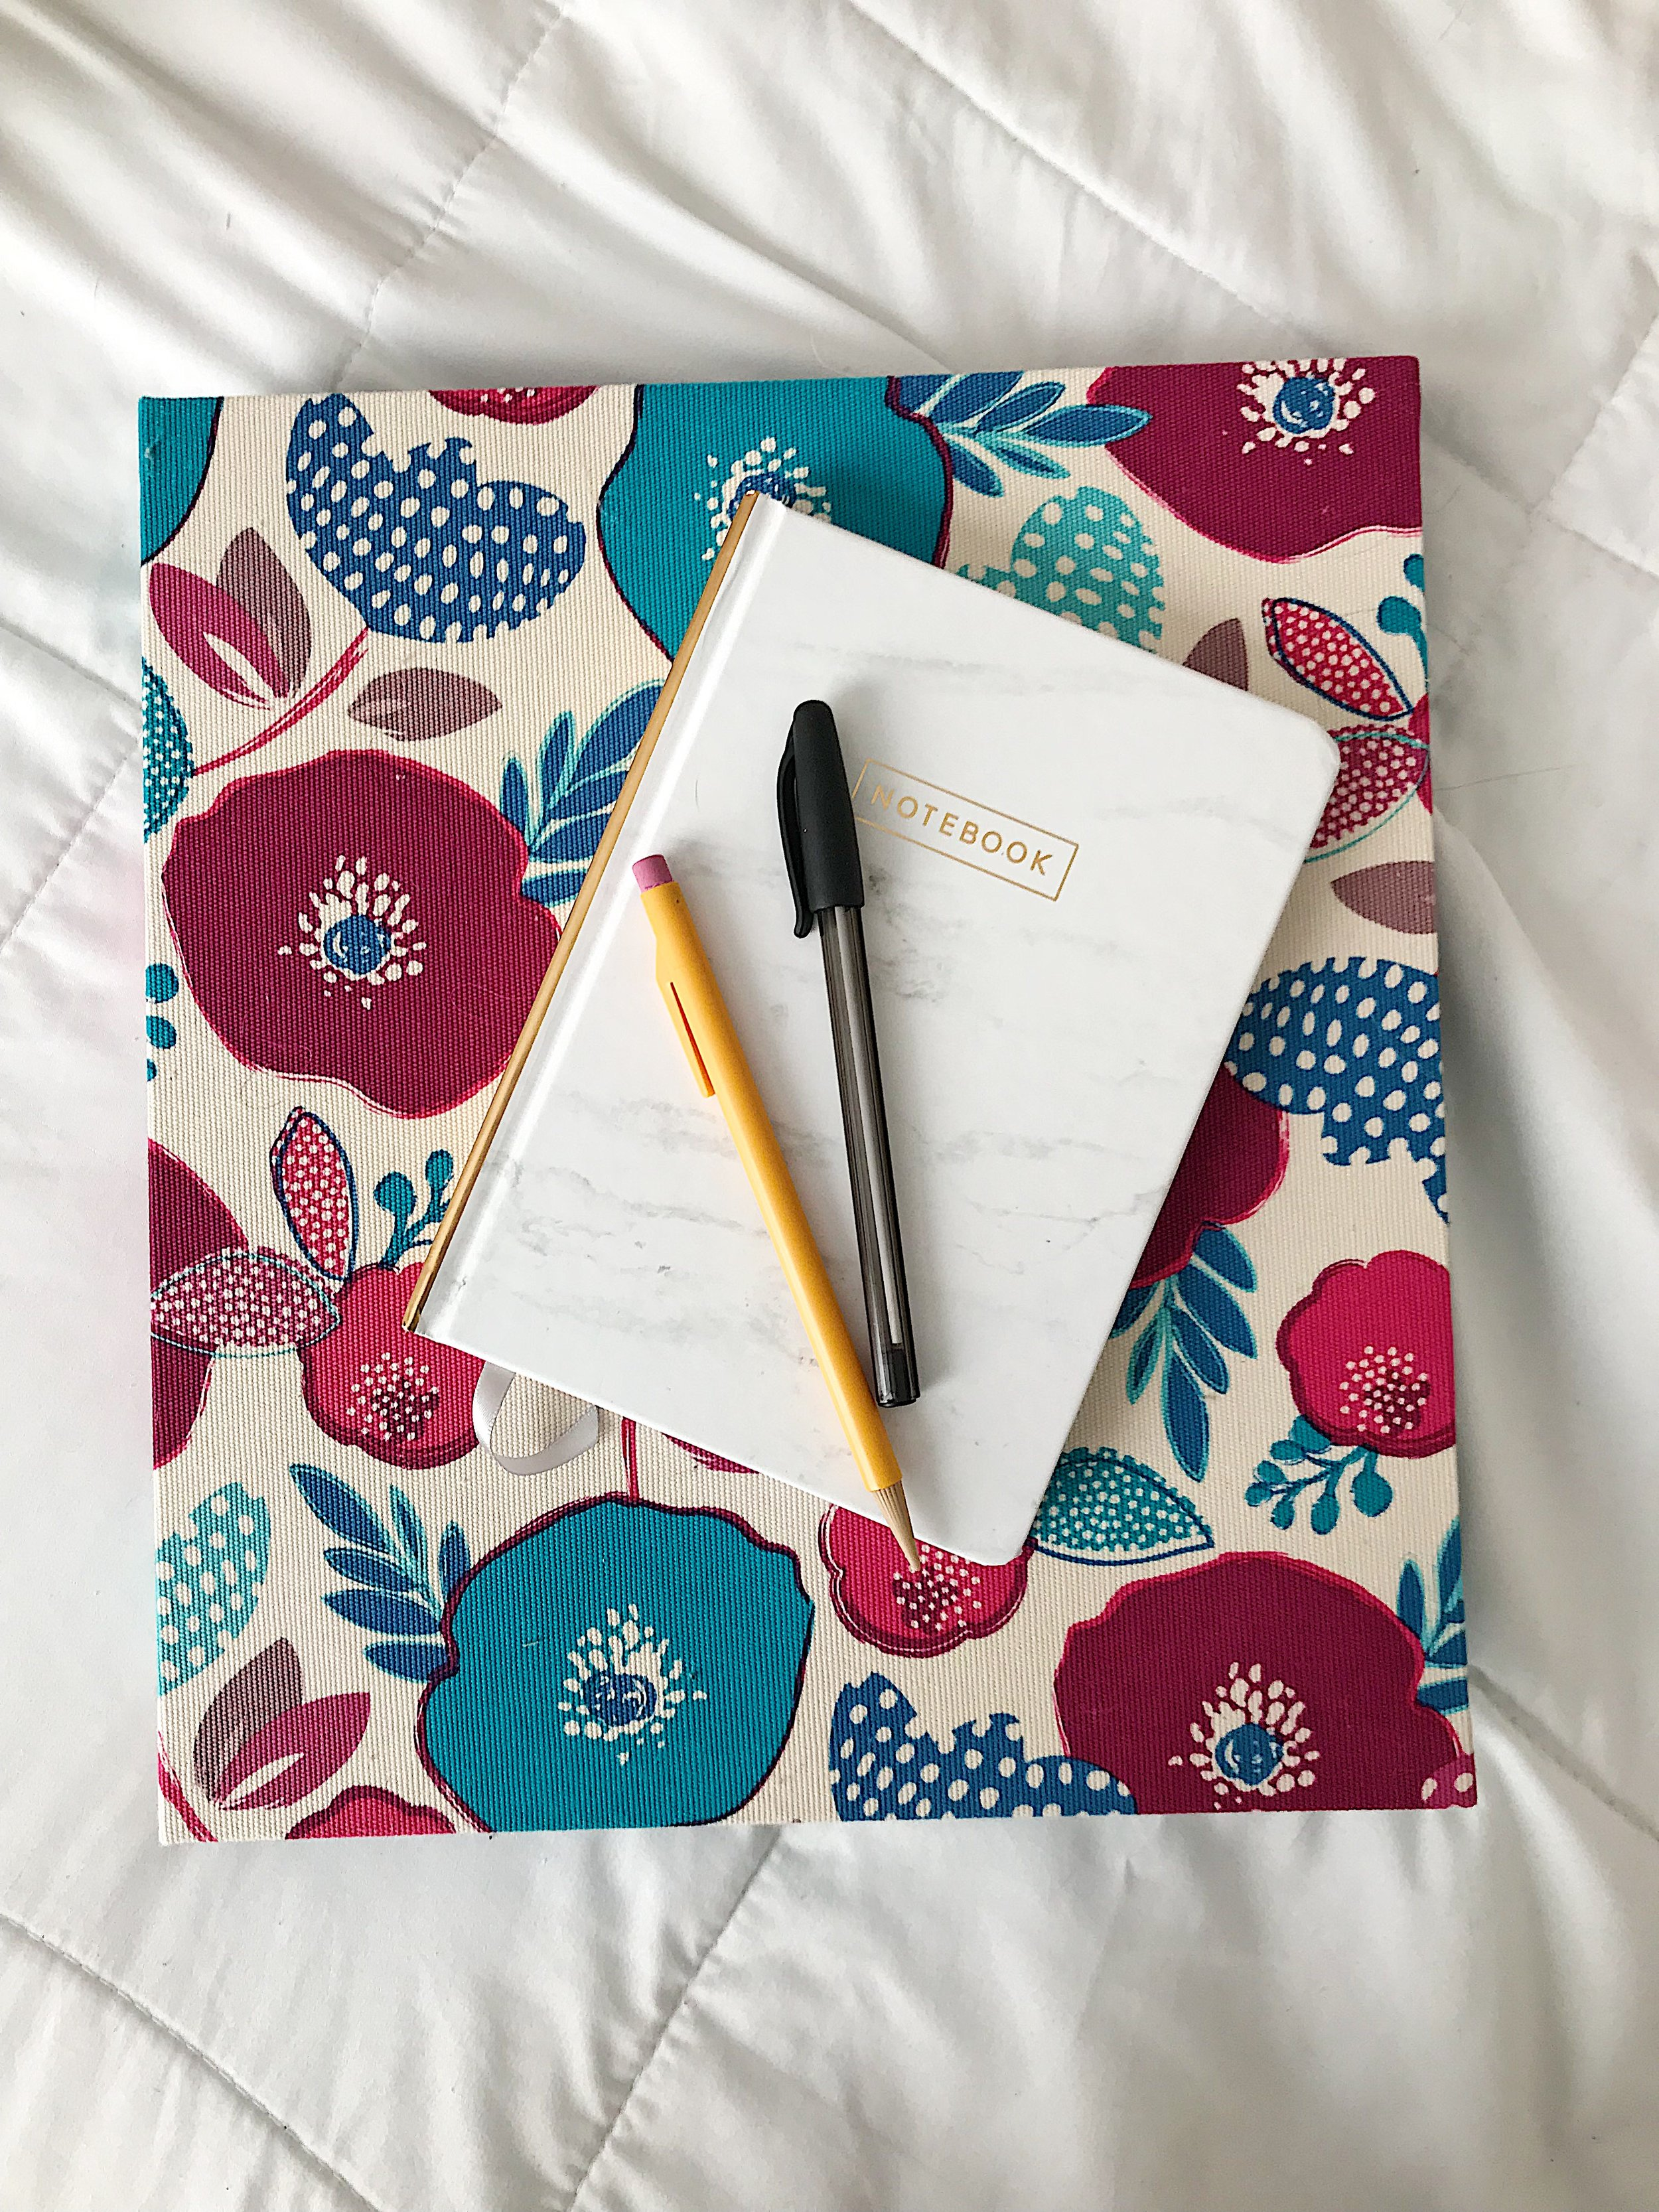 Binder and Notebook